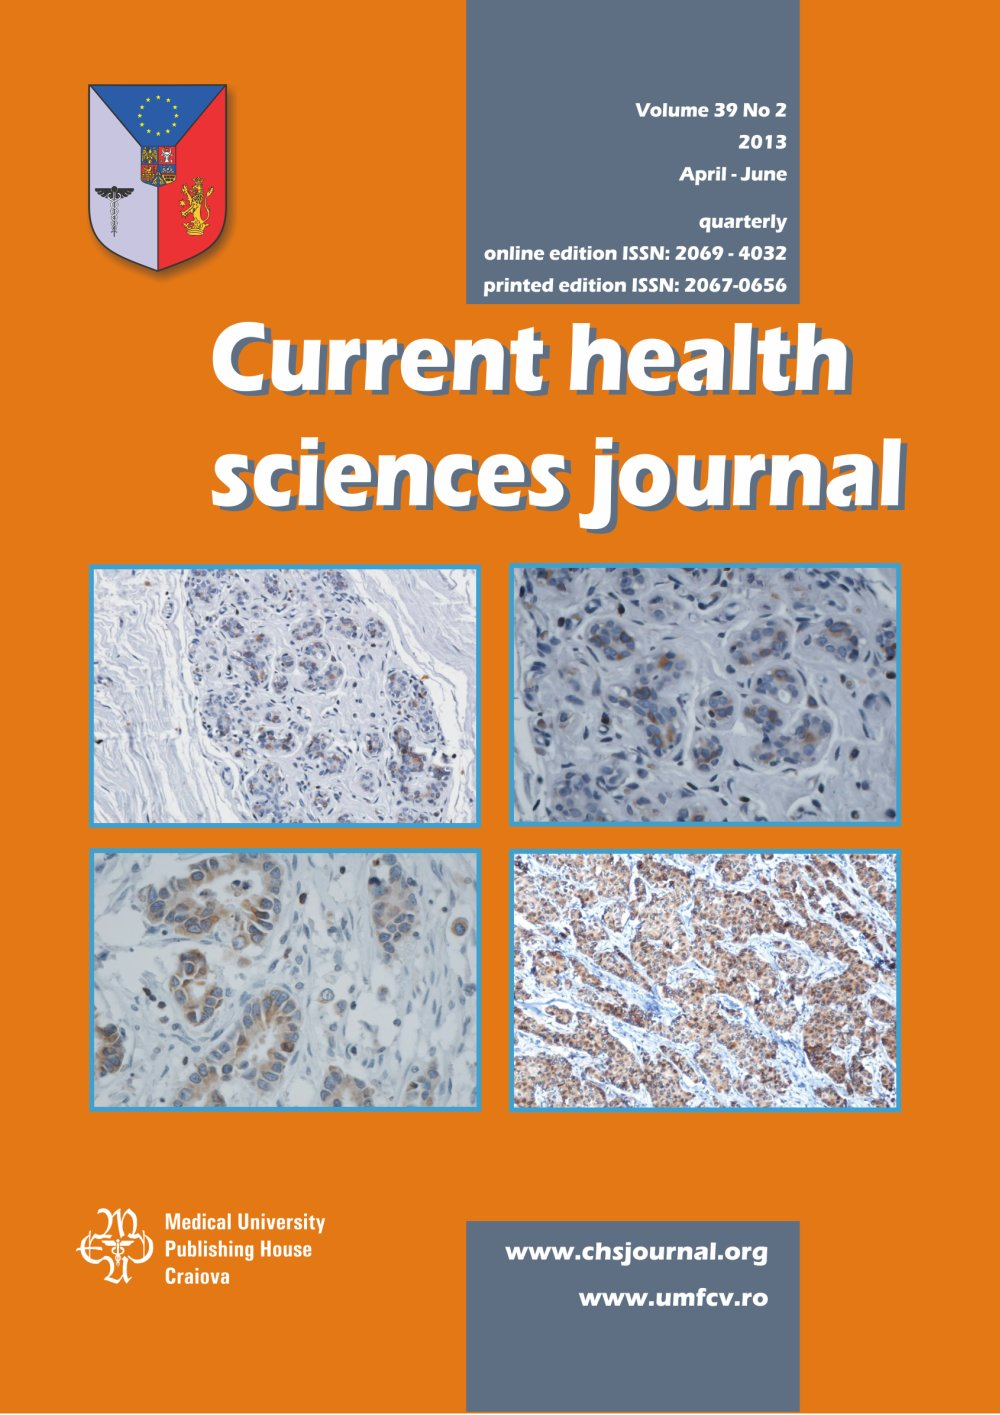 Current Health Sciences Journal, vol. 39 no. 2, 2013